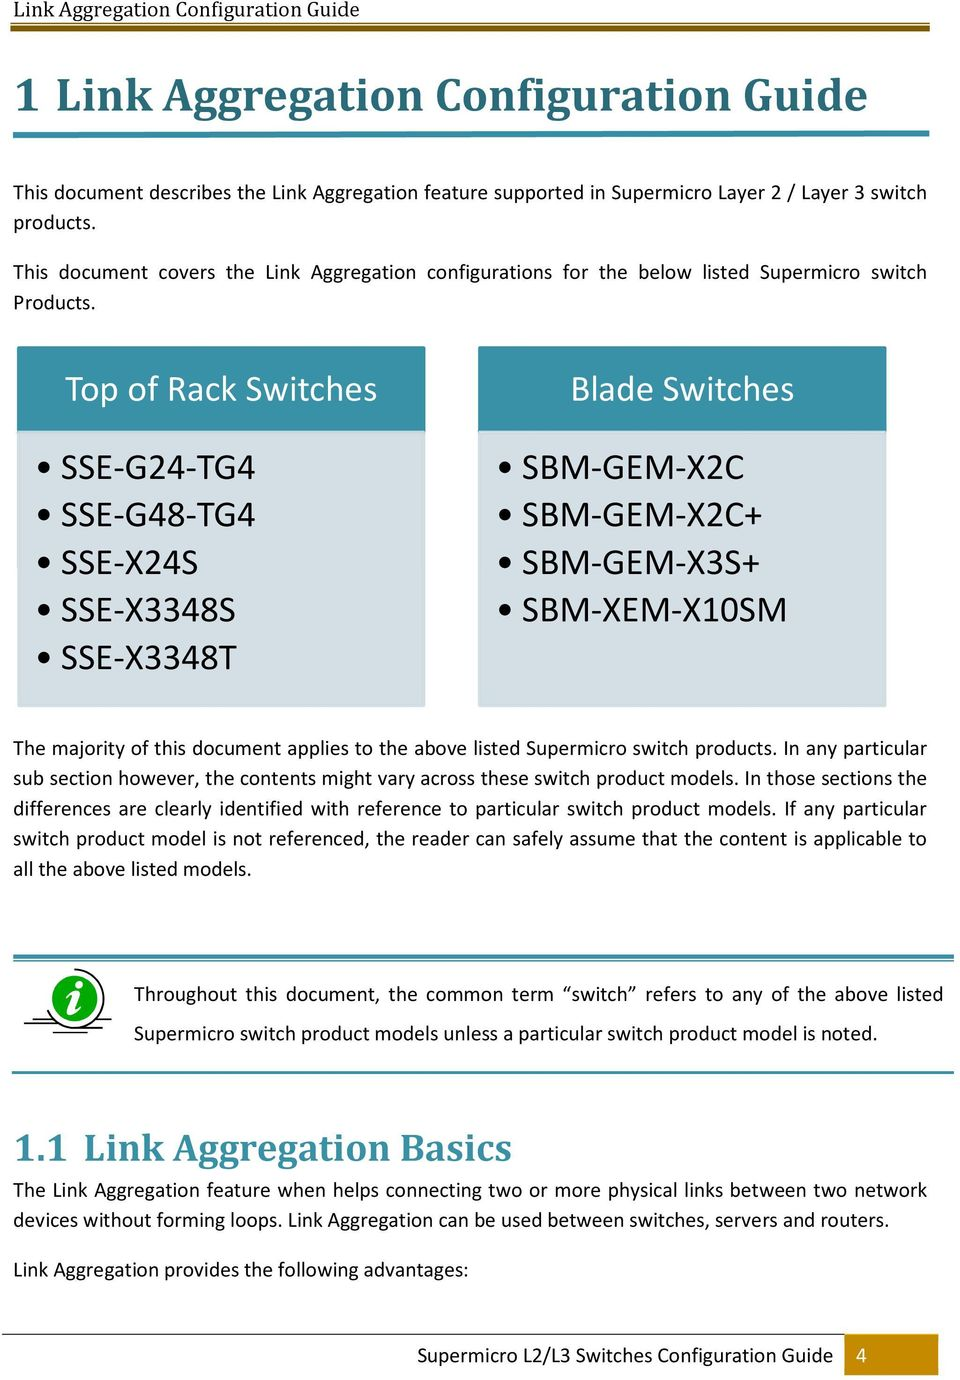 L2 / L3 Switches  Link Aggregation  Configuration Guide - PDF